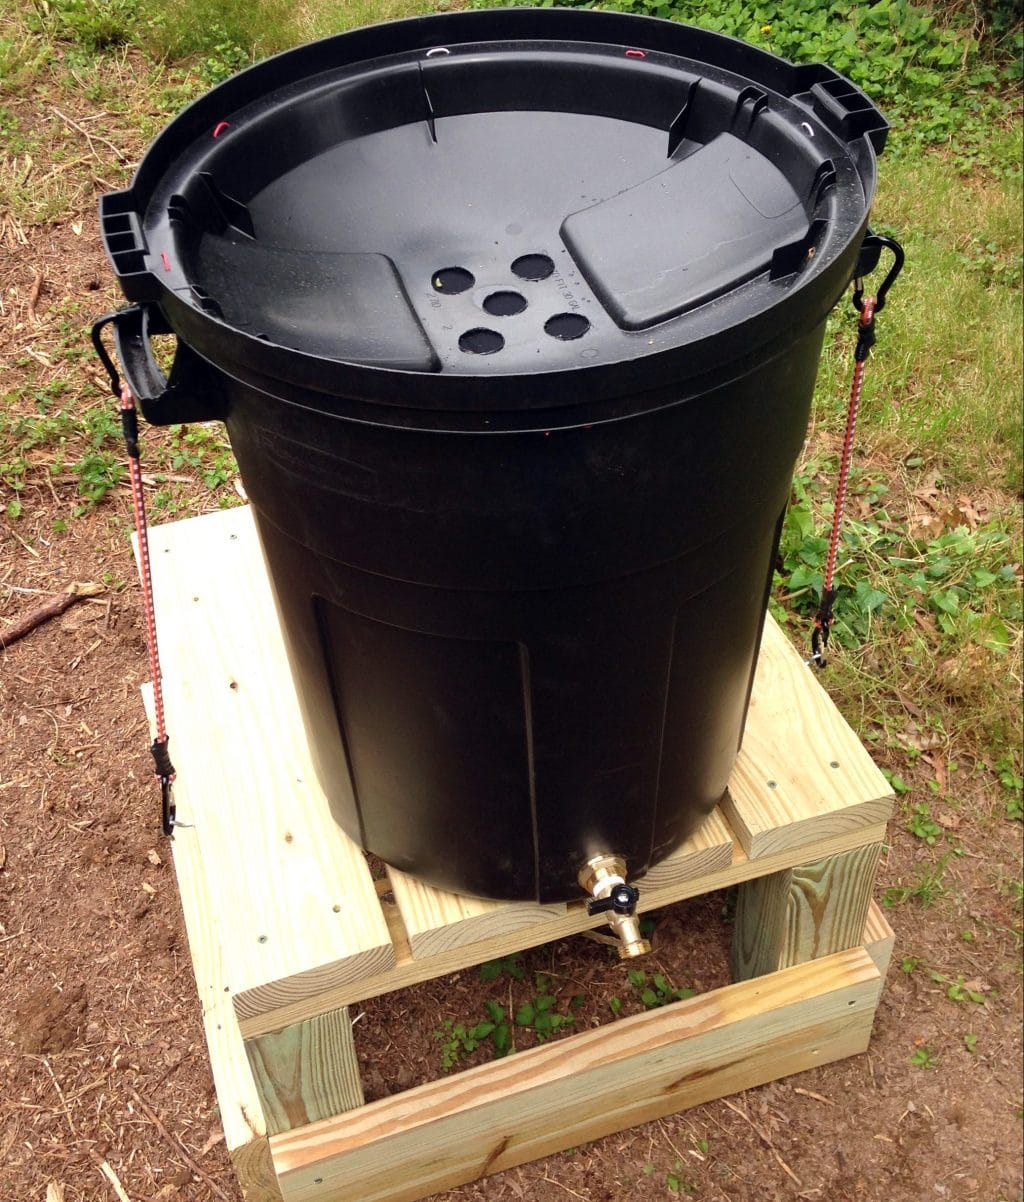 Diy Rain Barrel A Green Way To Conserve Water For Your